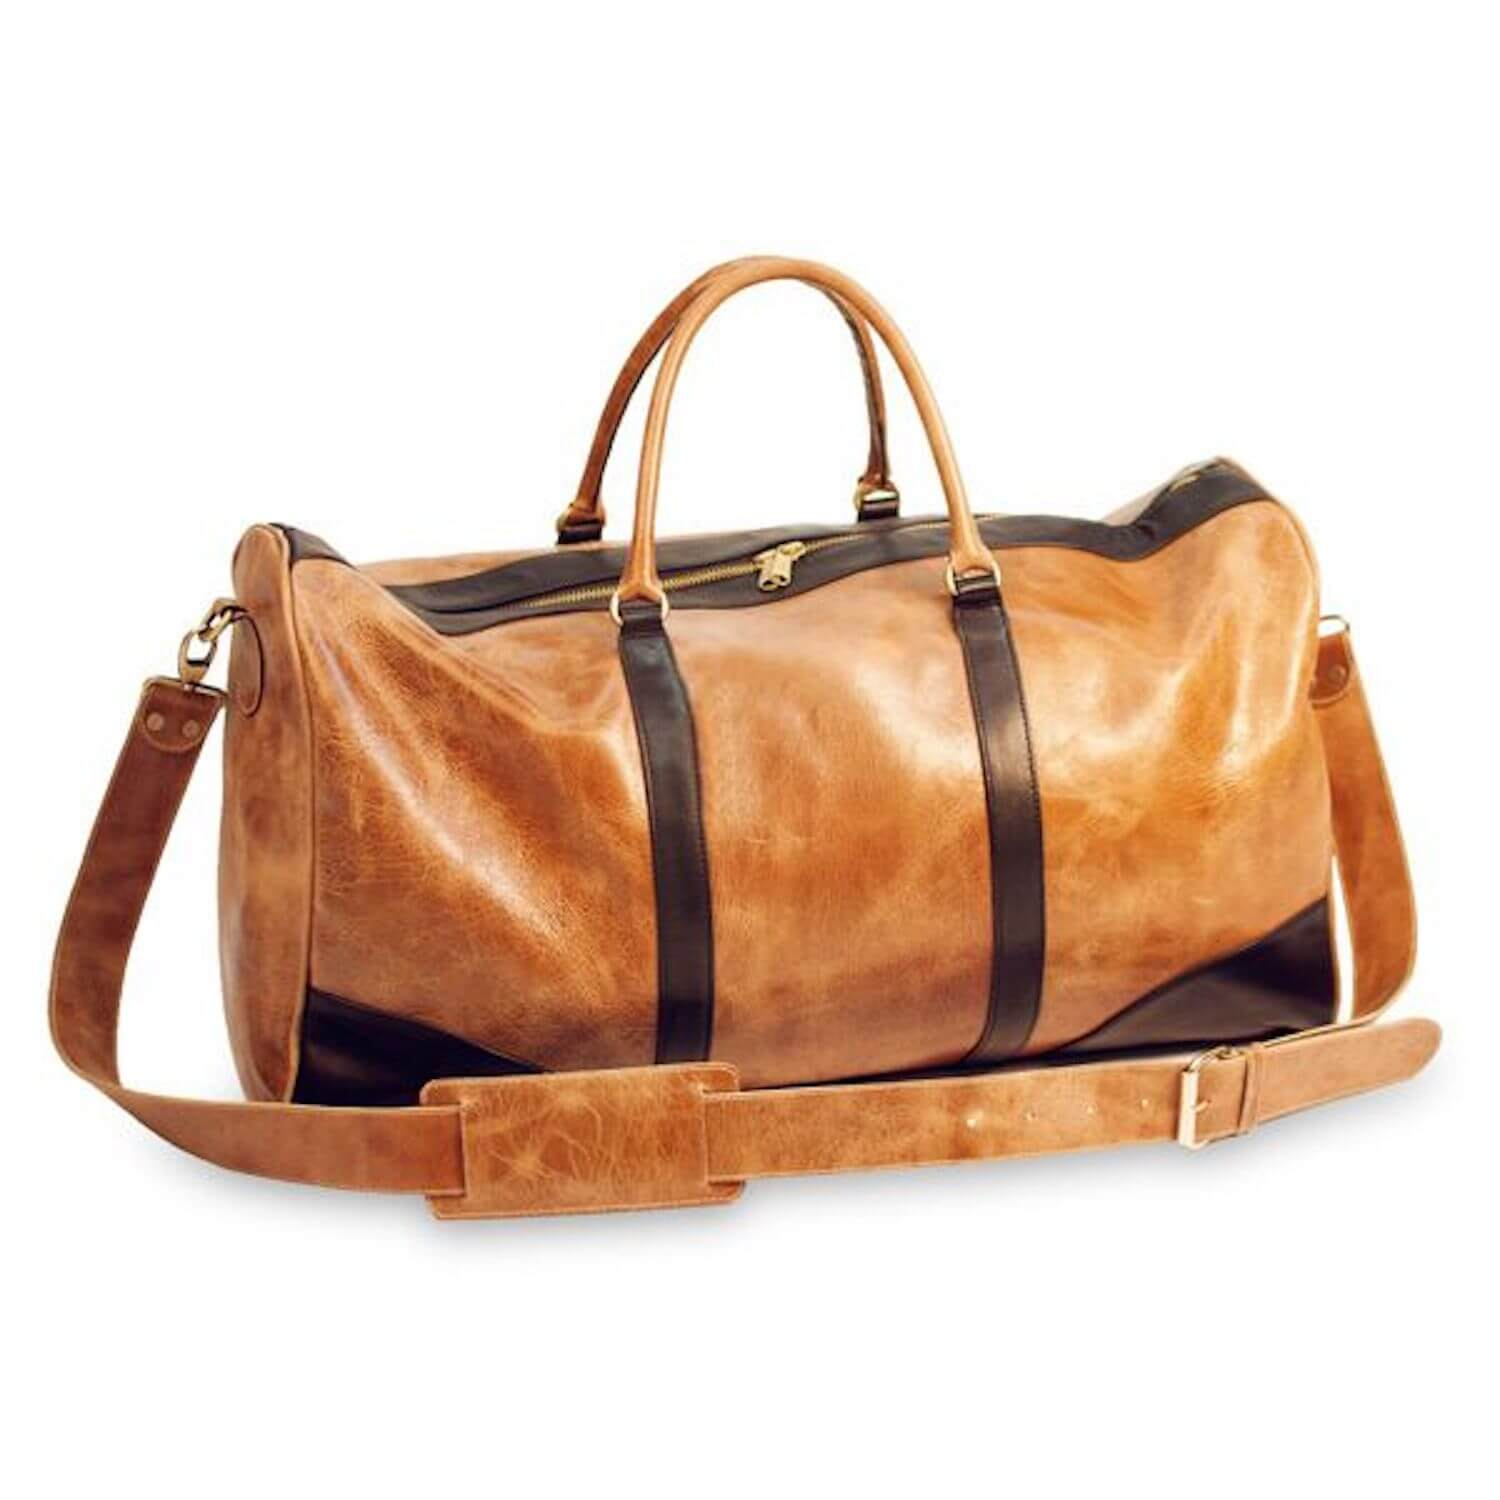 est living gifts for good sseko duffle bag